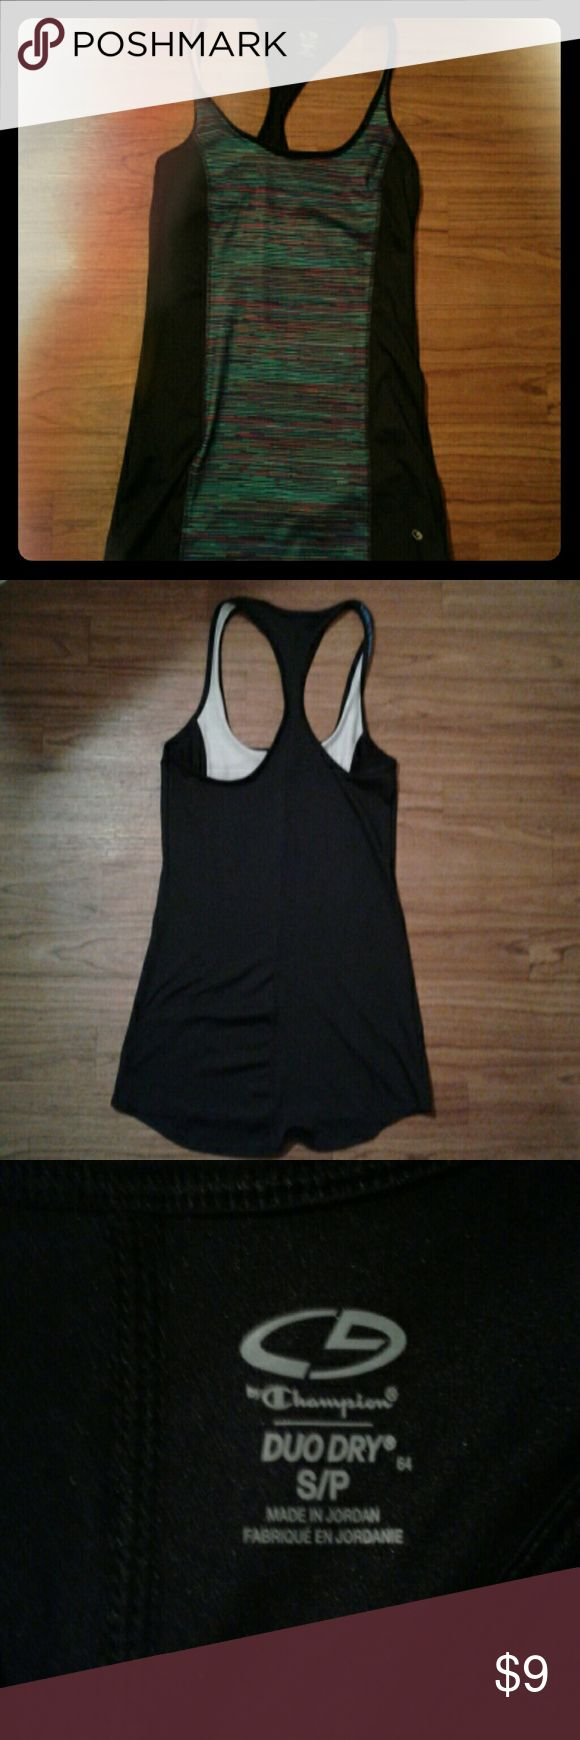 Champion Duo Dry Tank size S Work out champion duo-dry tank top, no stains, no holes or rips. Champion Tops Tank Tops